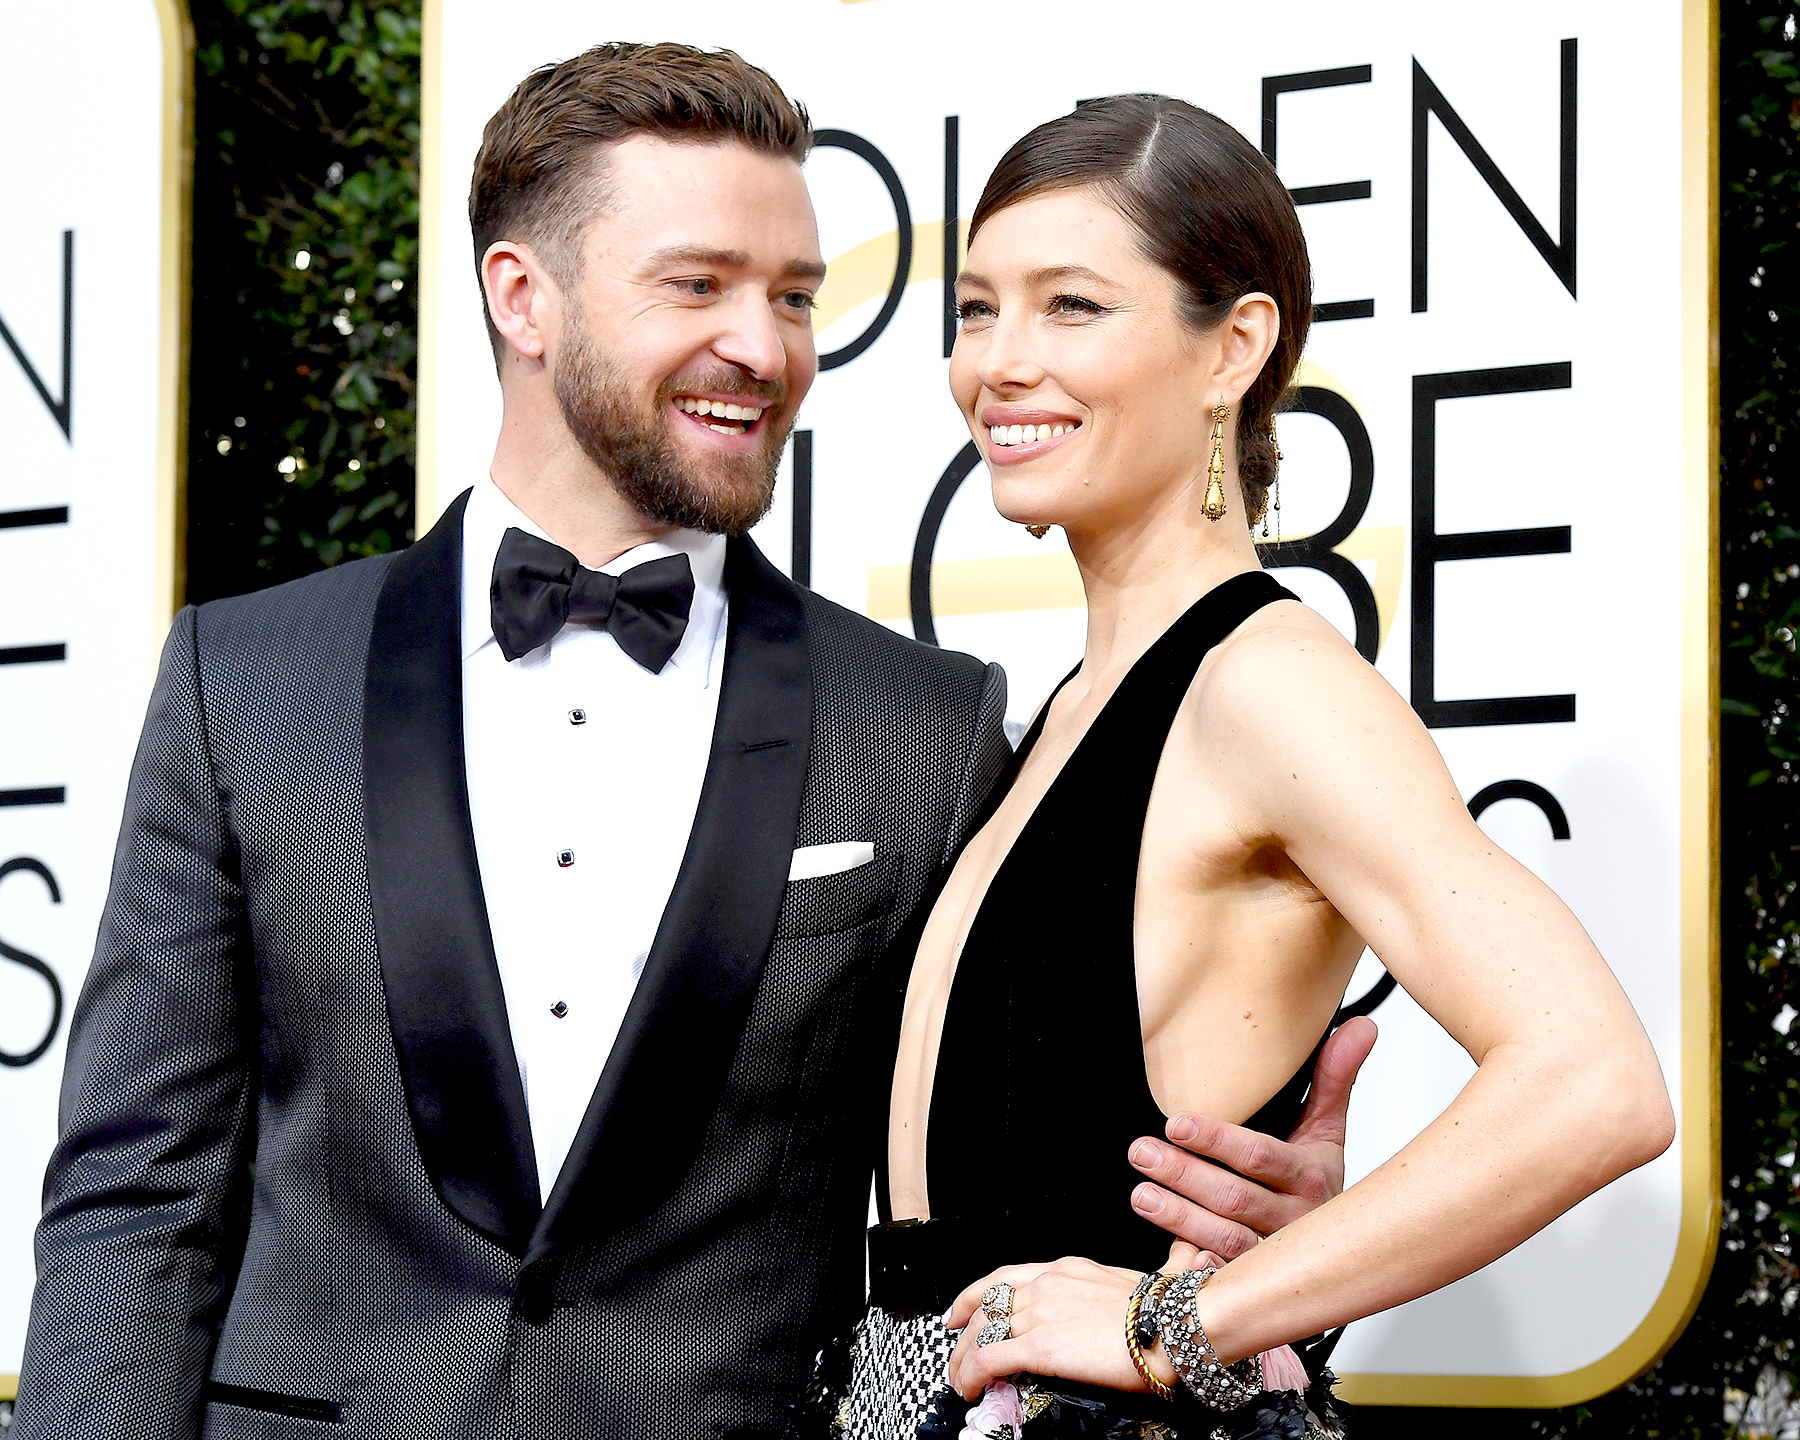 Justin Timberlake Pens Love Letter To Jessica Biel On 5th Wedding Anniversary